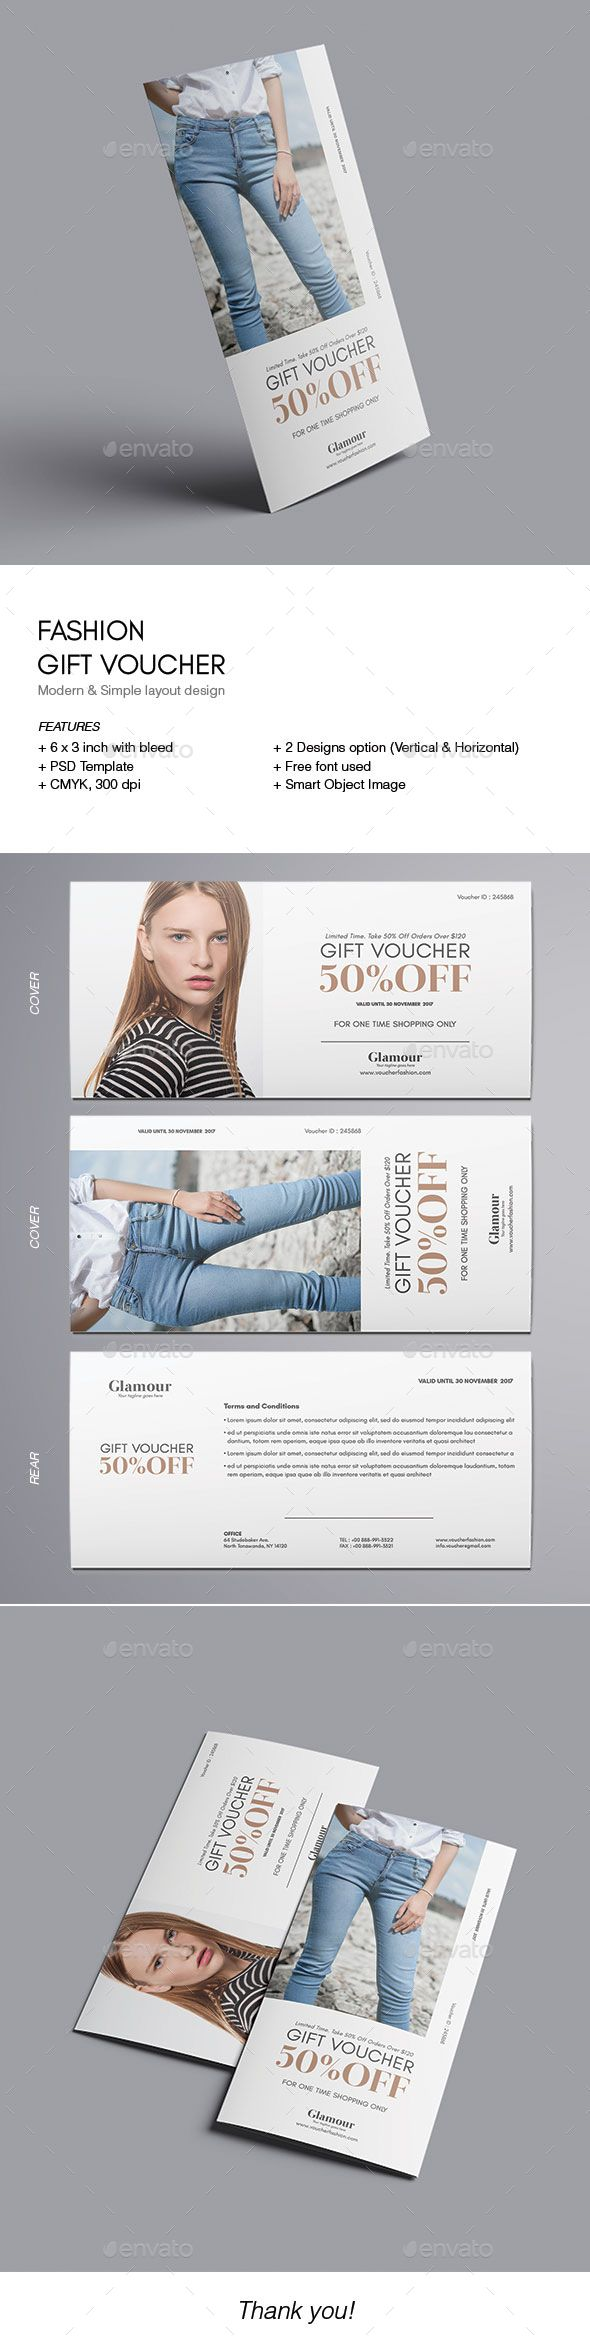 Fashion Gift Voucher — Photoshop PSD #Loyalty Cards #voucher beauty • Download ➝ https://graphicriver.net/item/fashion-gift-voucher/18790097?ref=pxcr